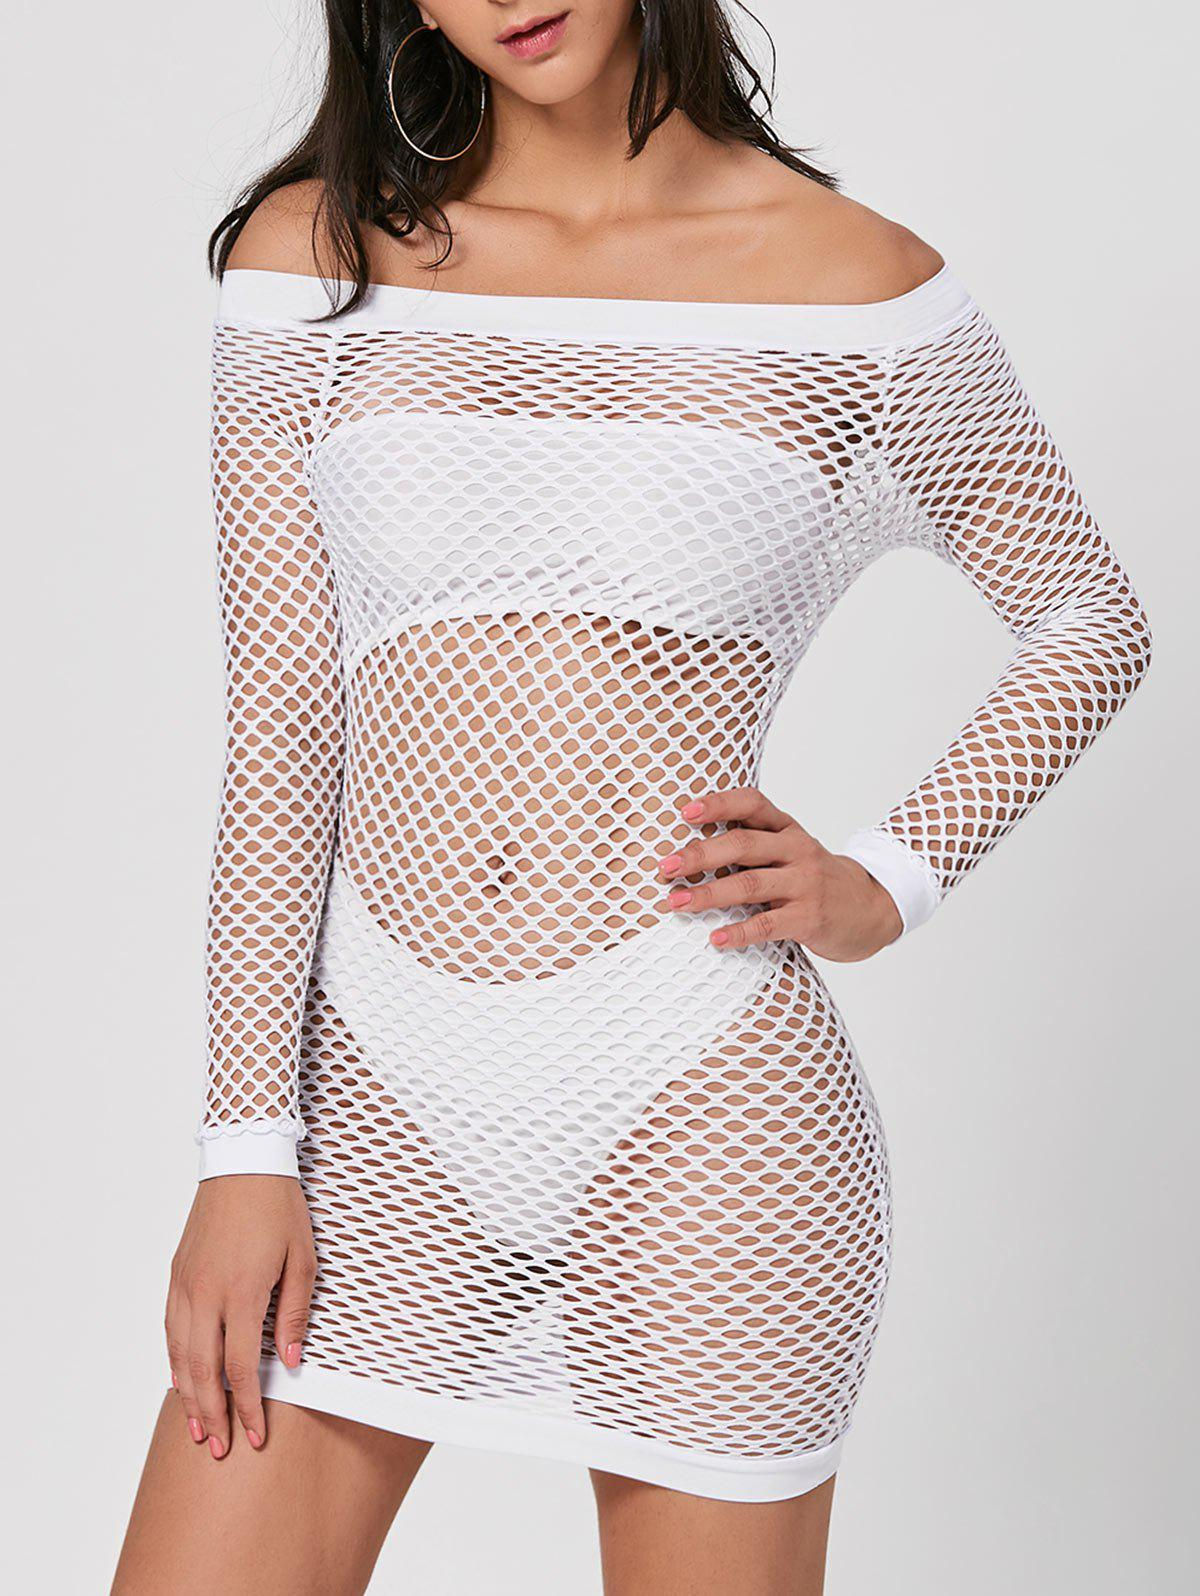 Long Sleeve Openwork Sheer Dress - WHITE L